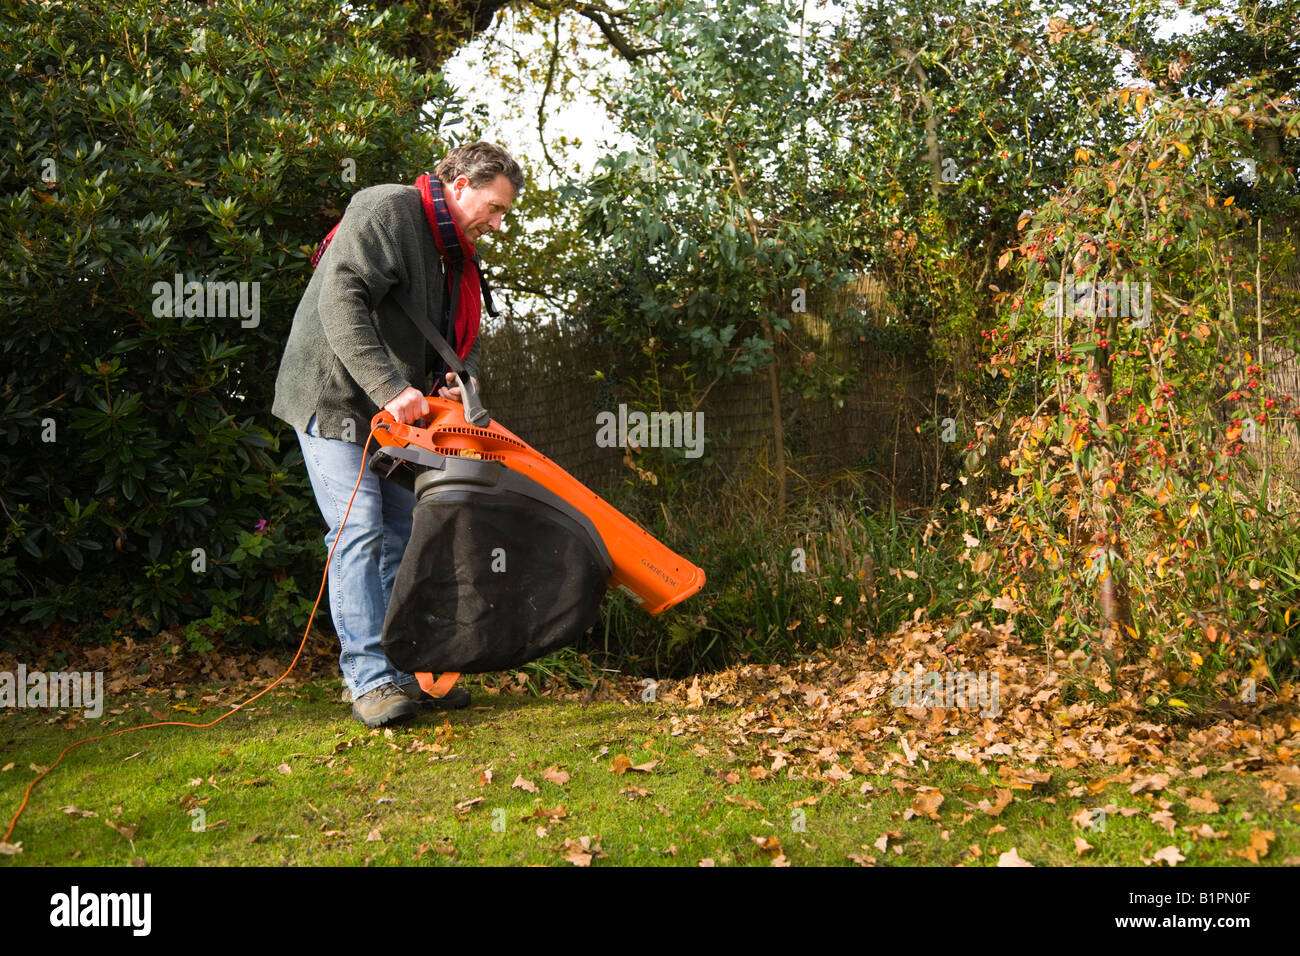 Leaf Blowing Man Using Combination Garden Vac And Leaf Blower To